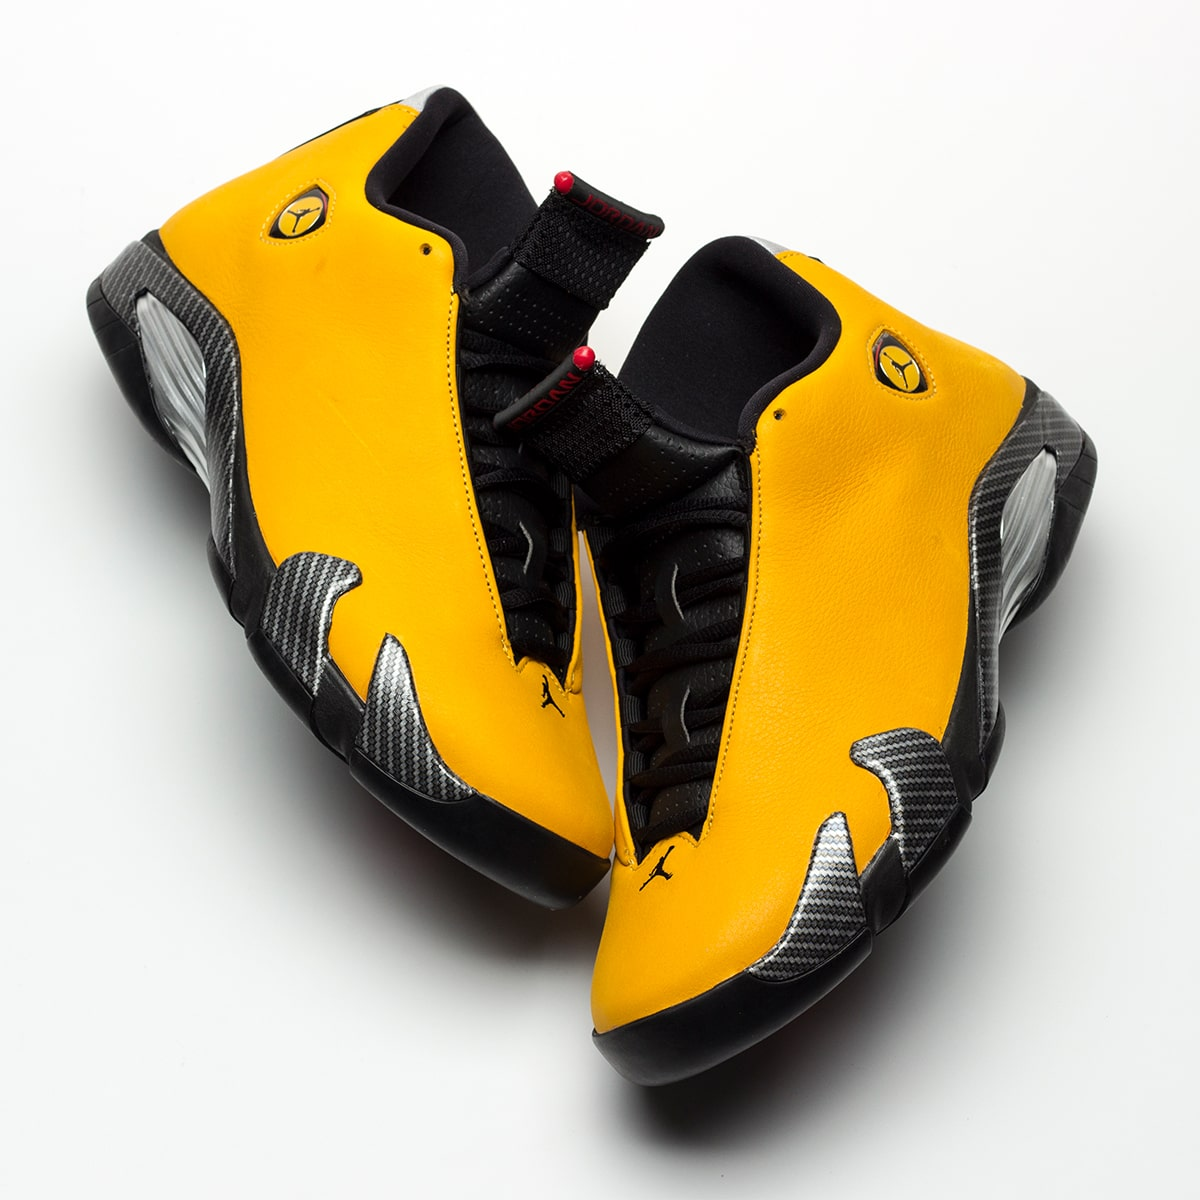 "794c35bf395 Images via @HanzuYing. First Looks //. Where to Buy the Air Jordan 14 SE  ""Yellow Ferrari"" Release Date"